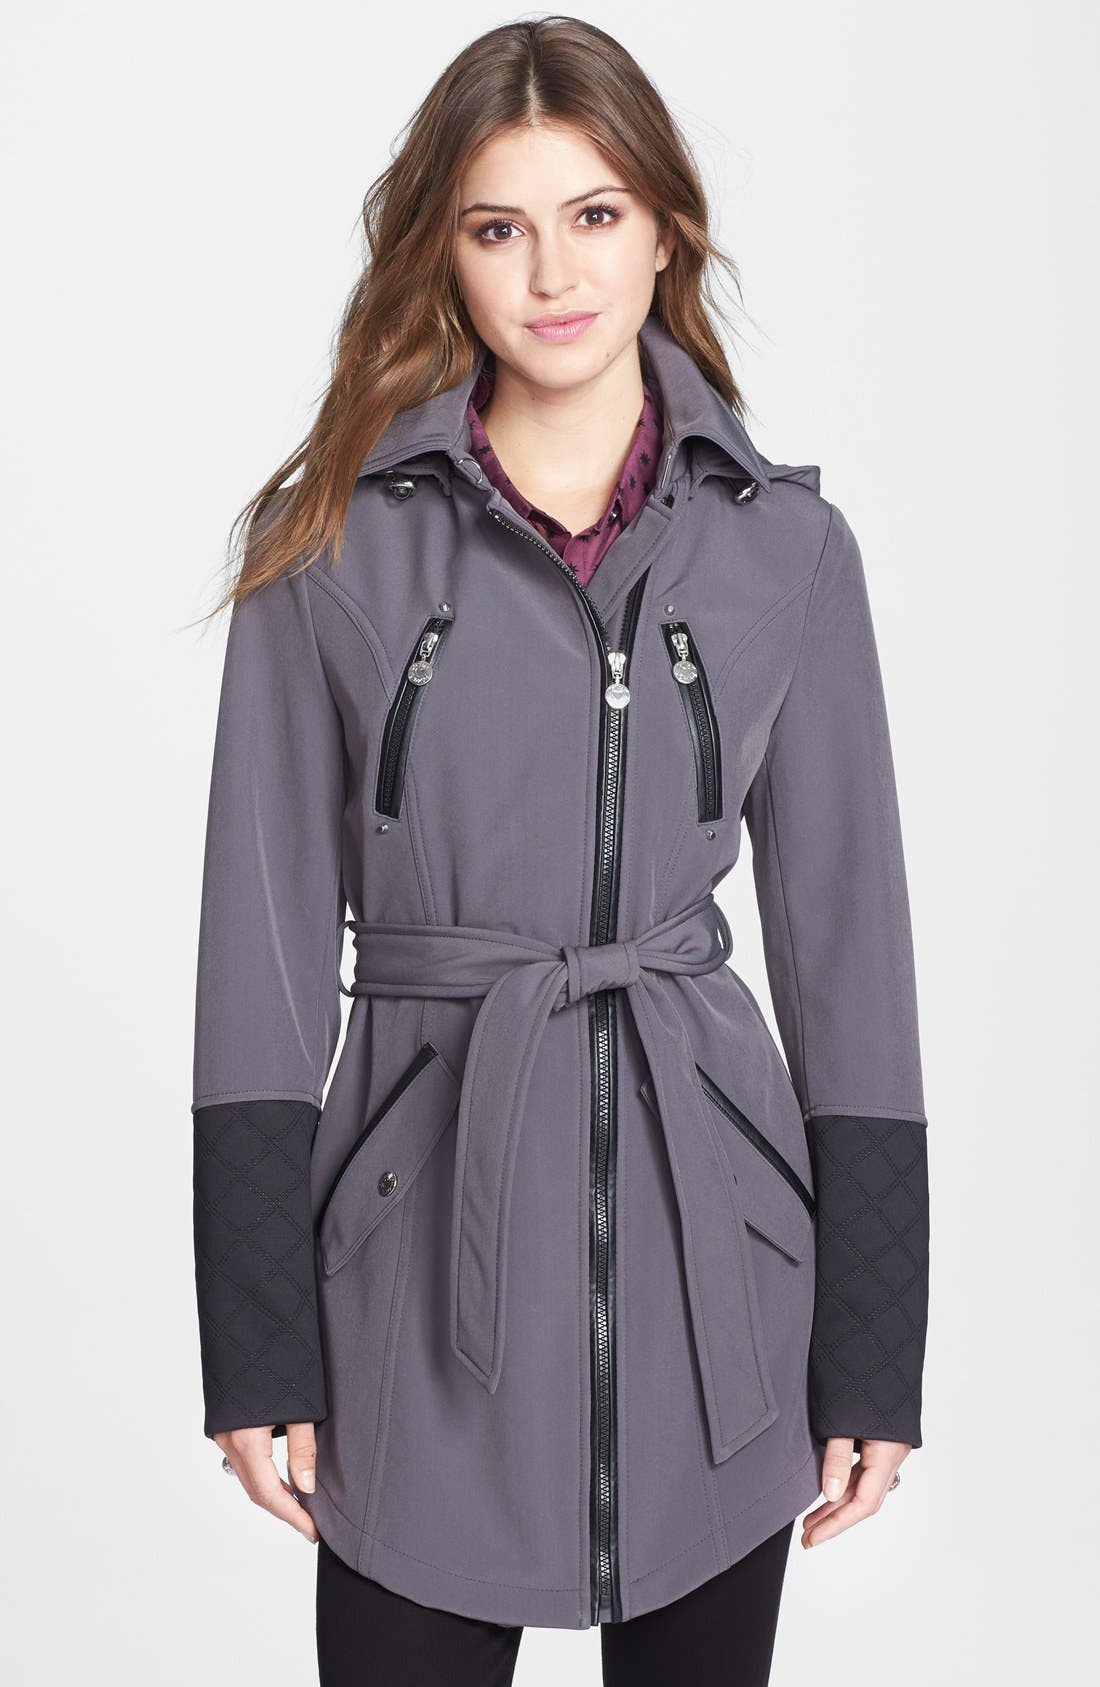 Alternate Image 1 Selected - Betsey Johnson Faux Leather Trim Soft Shell Jacket with Removable Hood (Online Only)